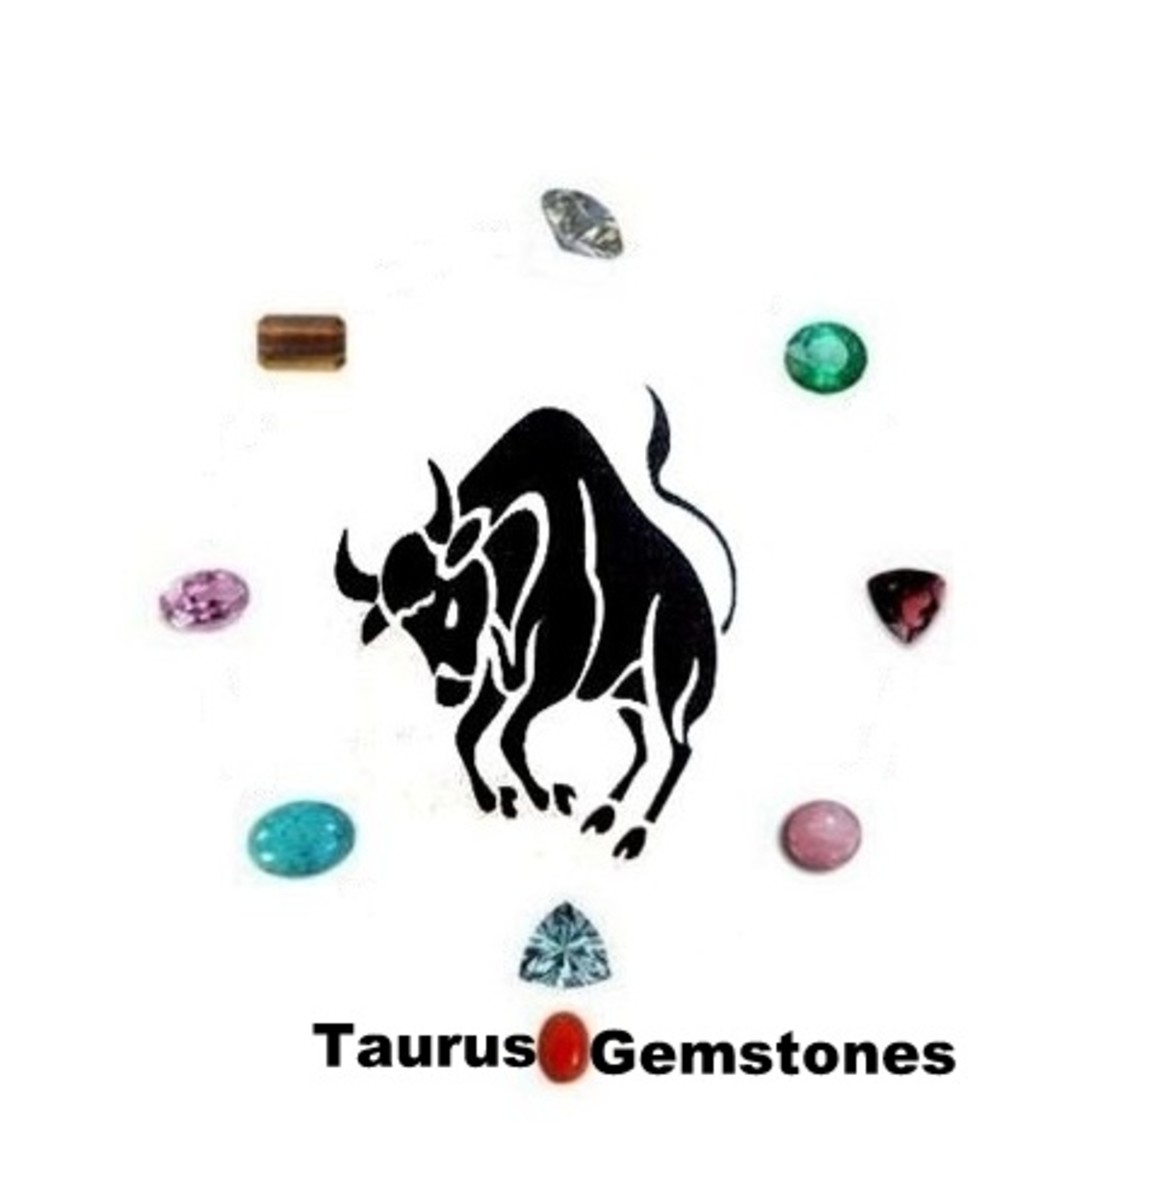 Taurus Gemstones : Diamond, Aquamarine, Kunzite, Garnet, Tiger Eye Quartz, Emerald, Rose Quartz, red coral and Turquoise.